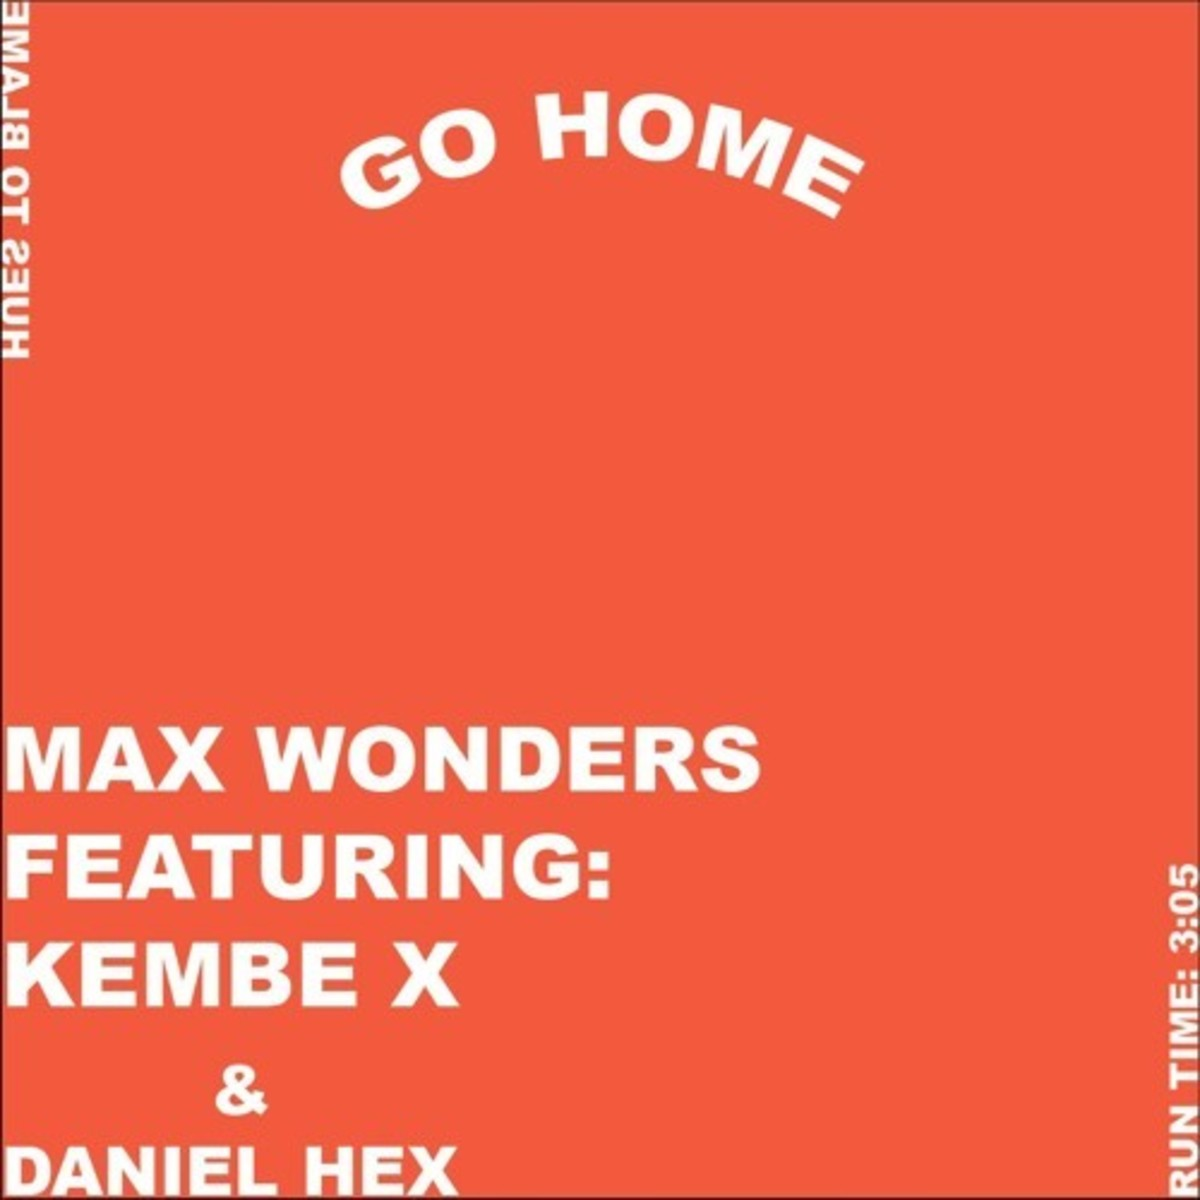 max-wonders-go-home.jpg